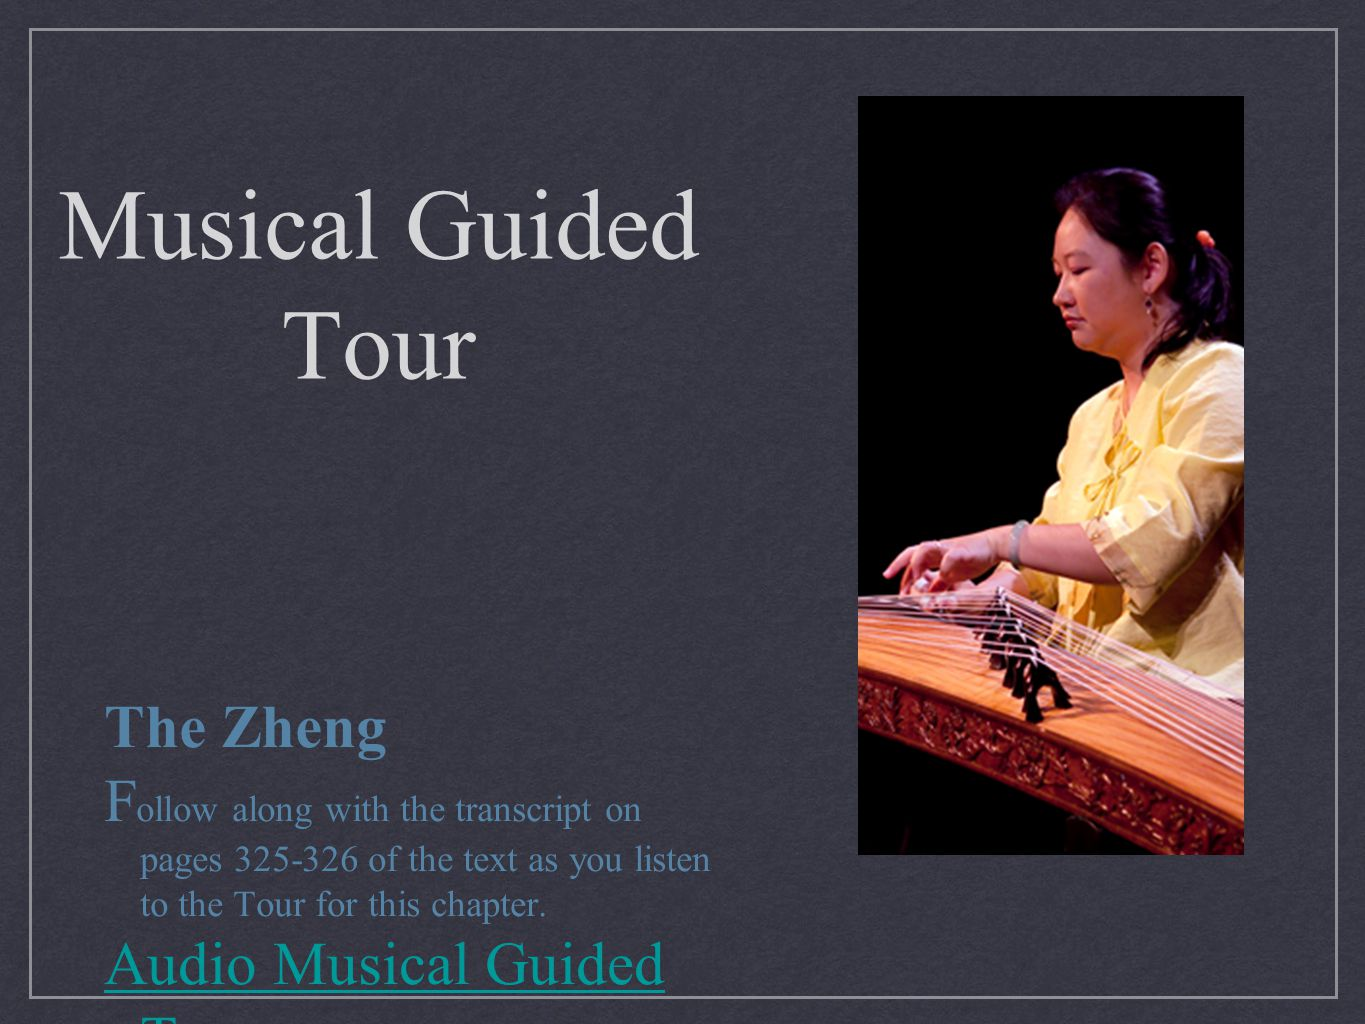 Musical Guided Tour The Zheng